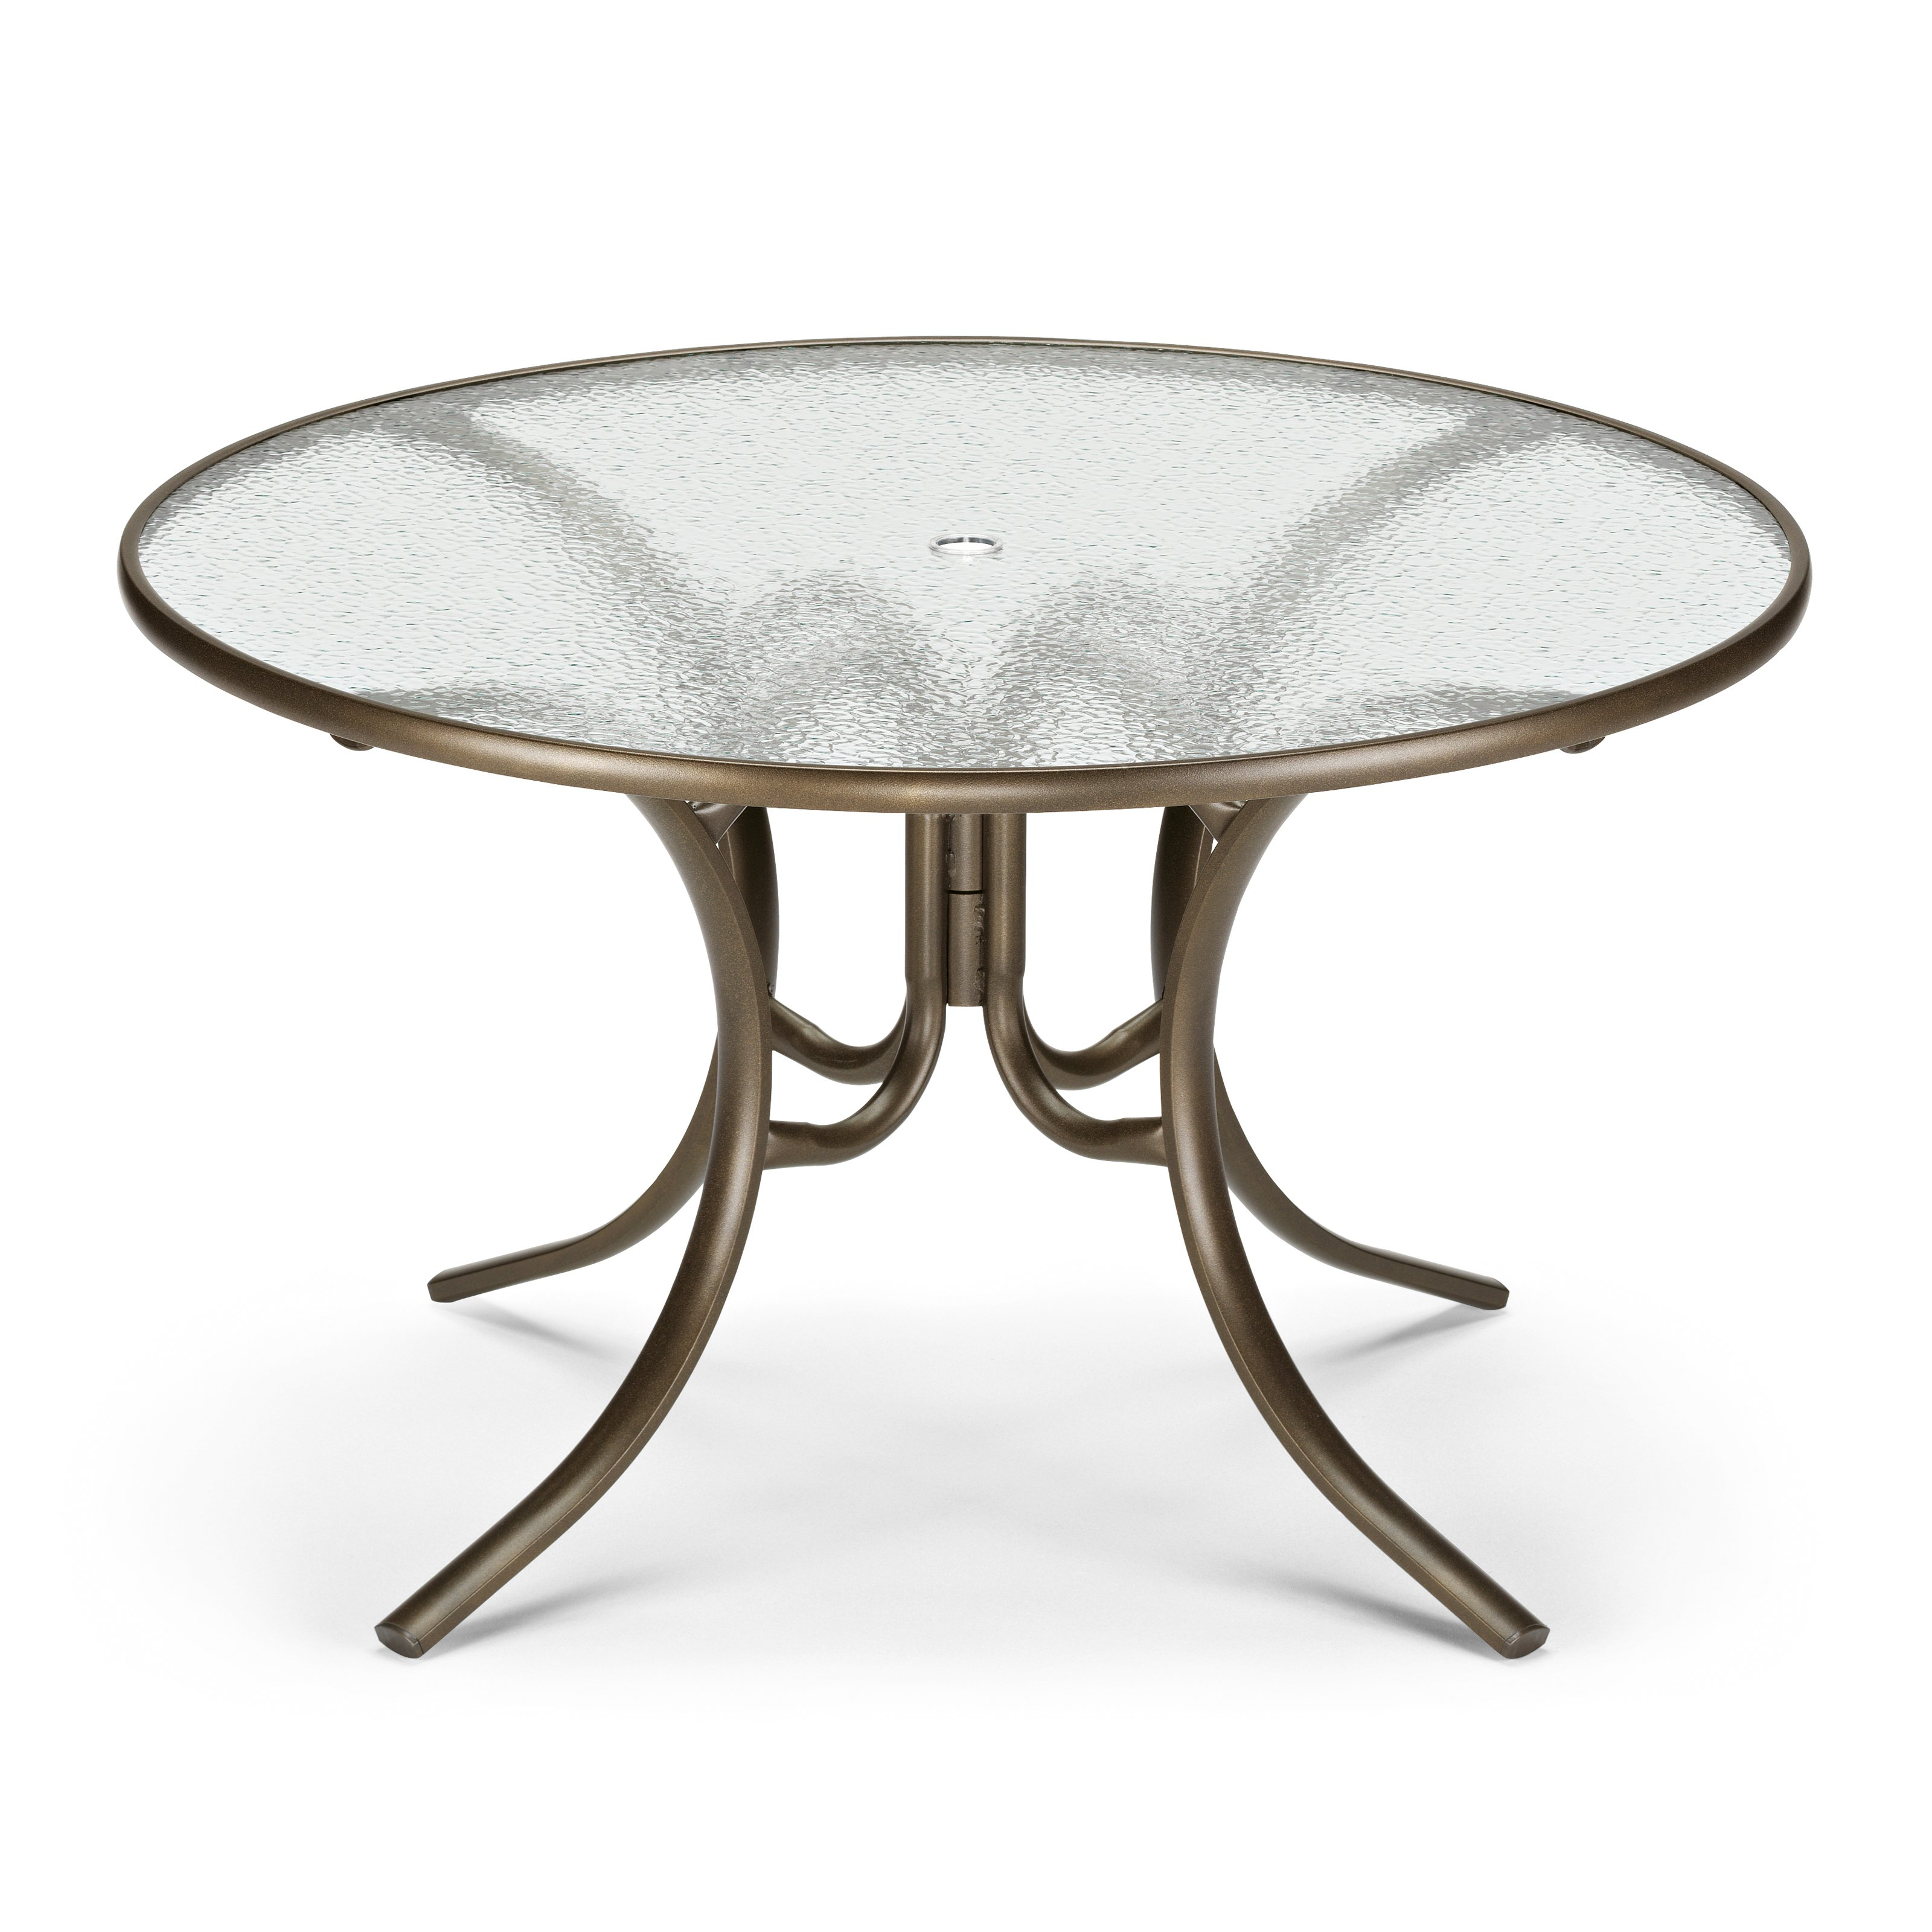 round patio table round glass top patio dining table - patio dining tables at hayneedle GENDWNF